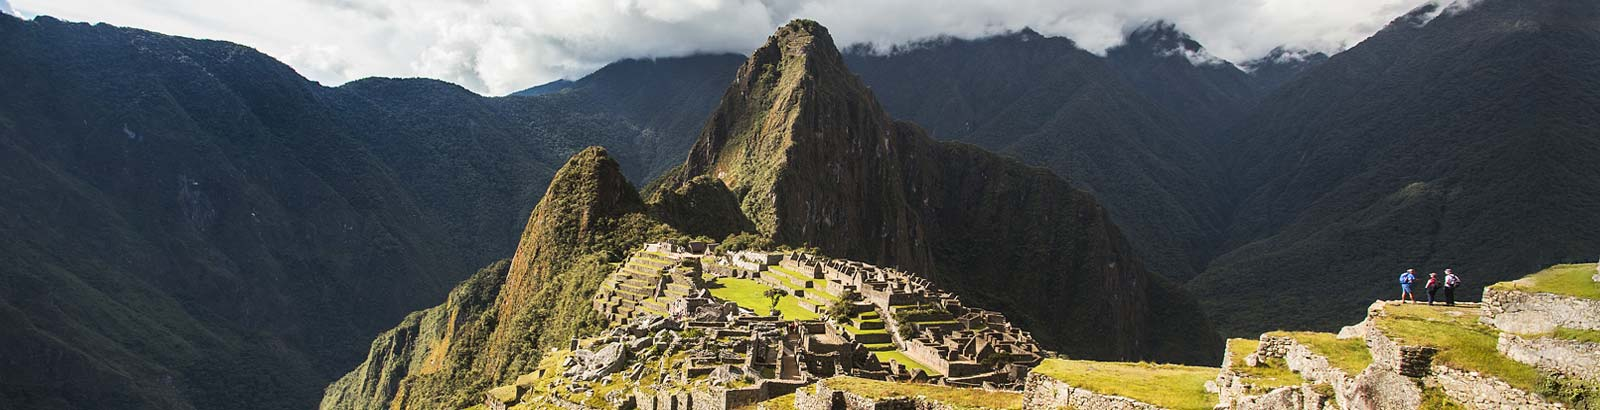 View over Machu Picchu Citadel atop mountain with river far below in the valley